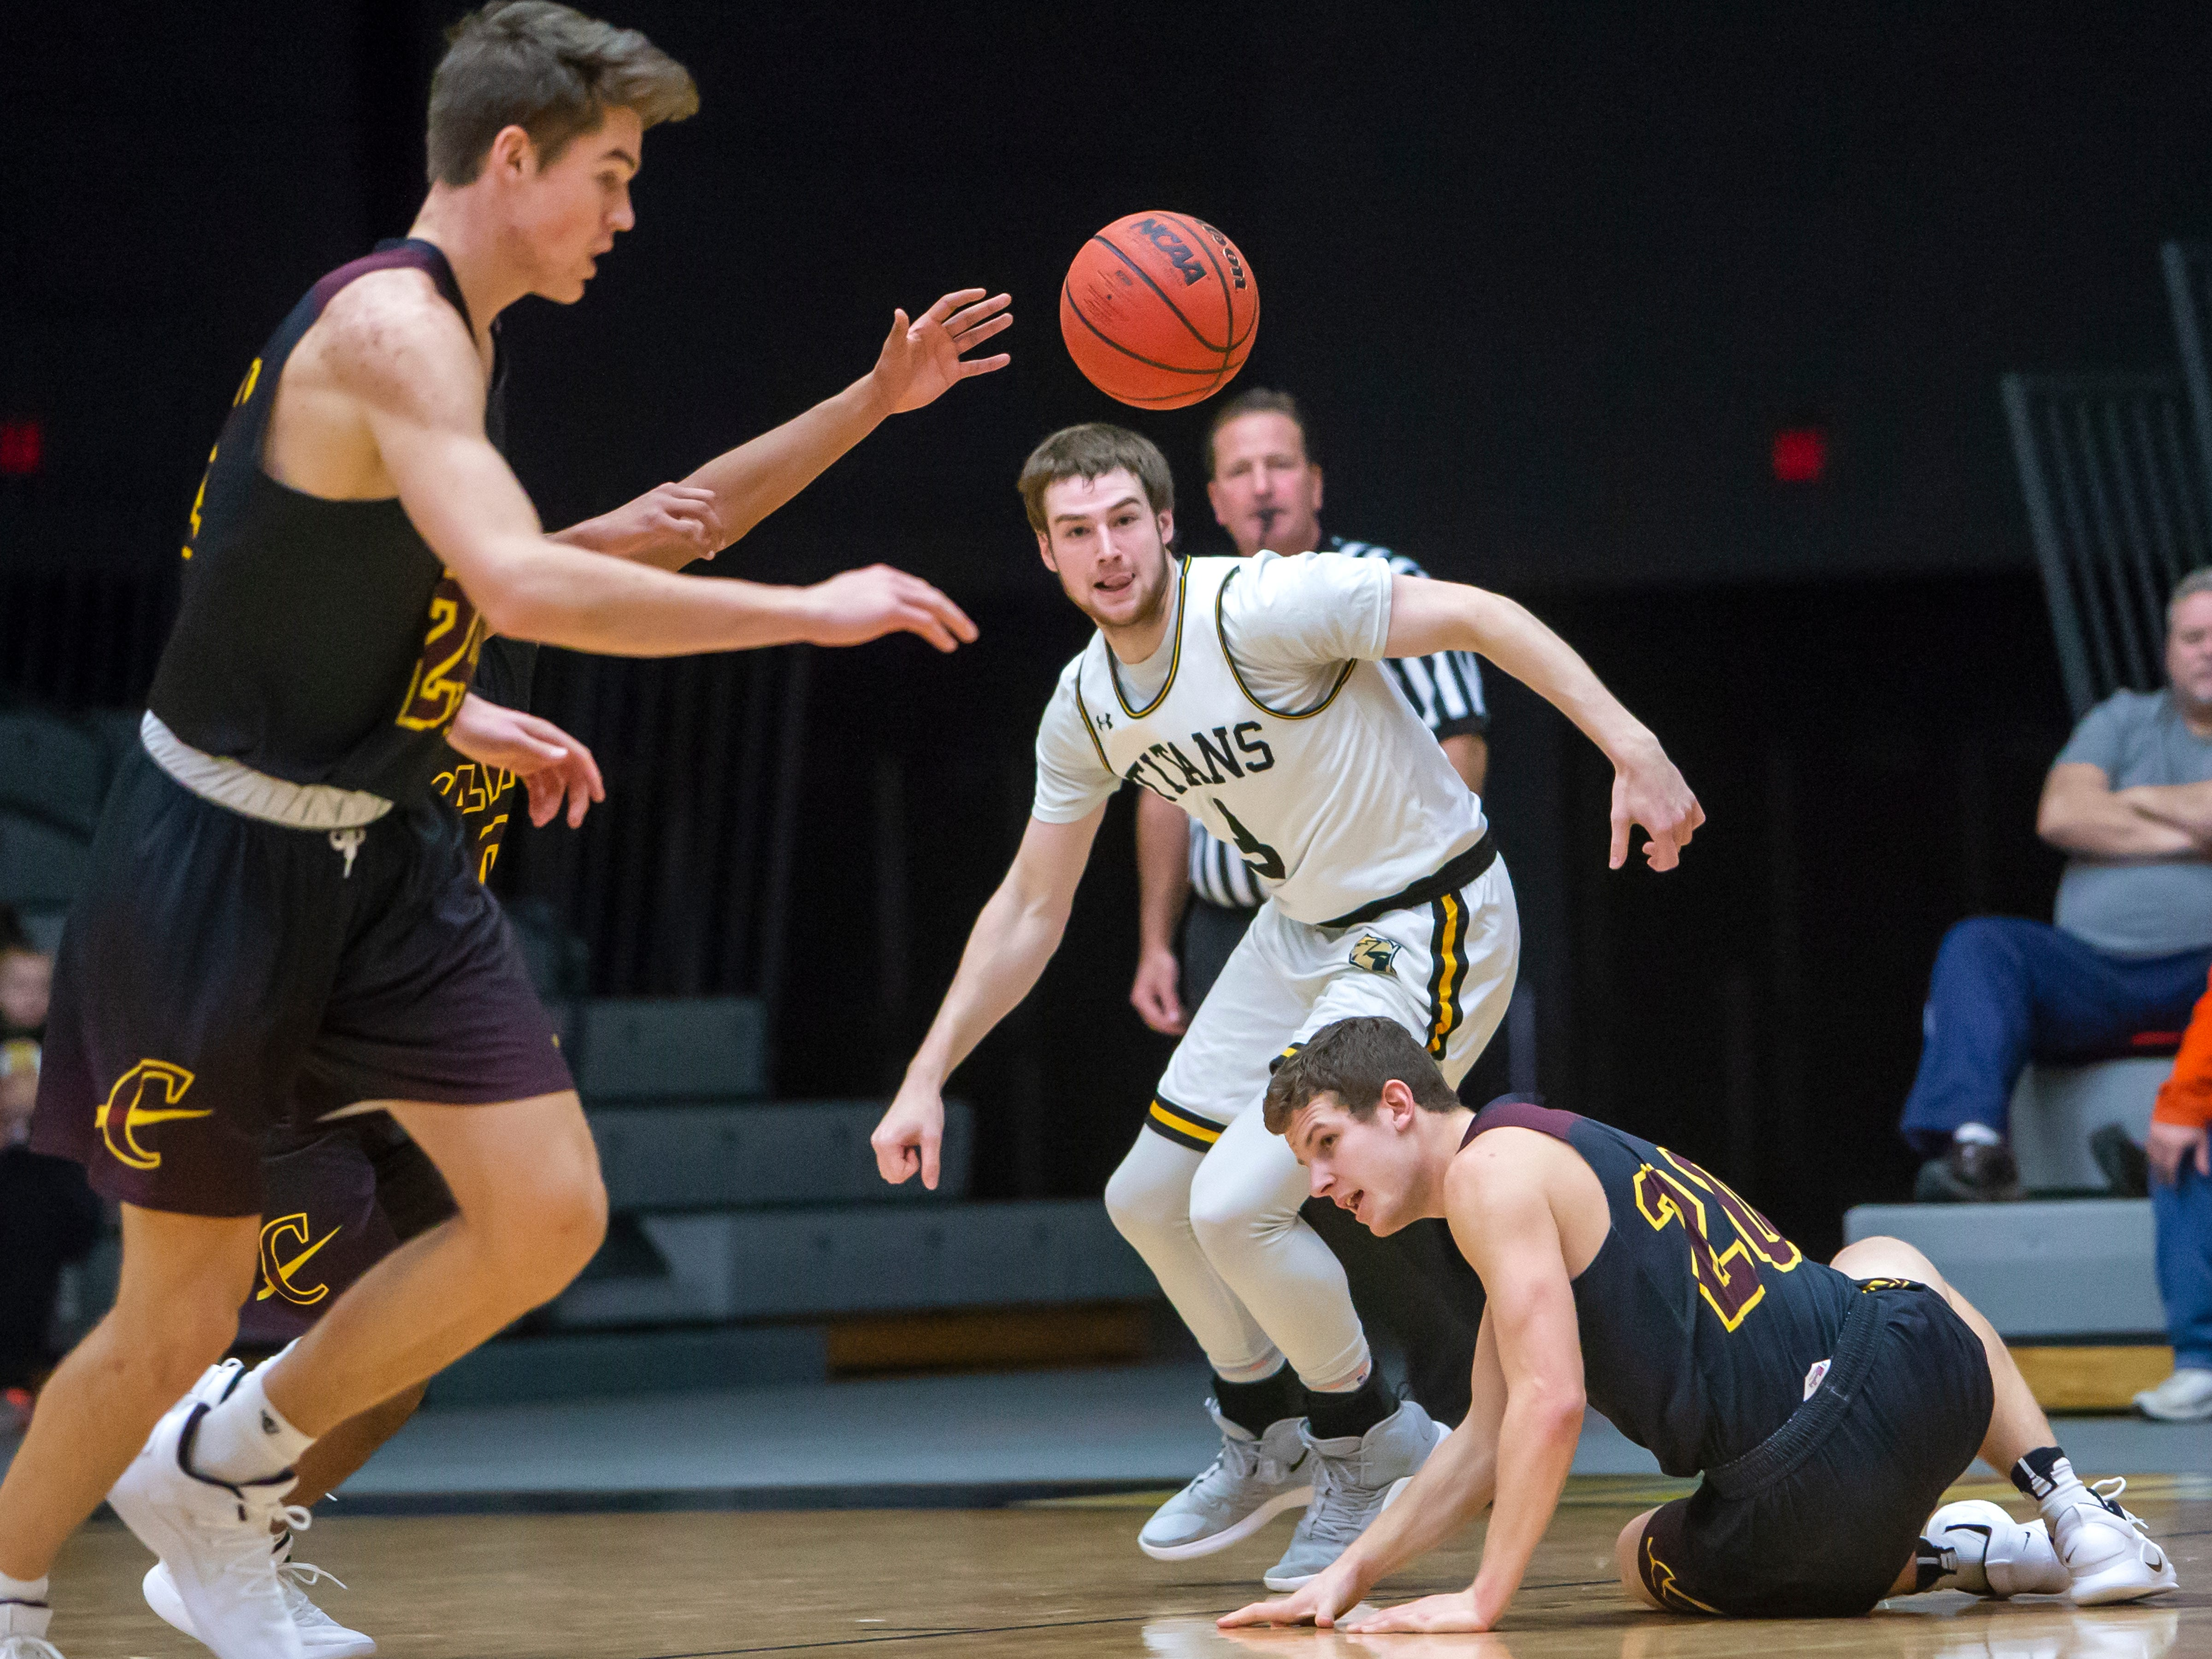 UW-Oshkosh's David Vlotho turns in the direction of the loose ball playing against Calvin College at the Kolf Sports Center on Saturday, December 8, 2018.